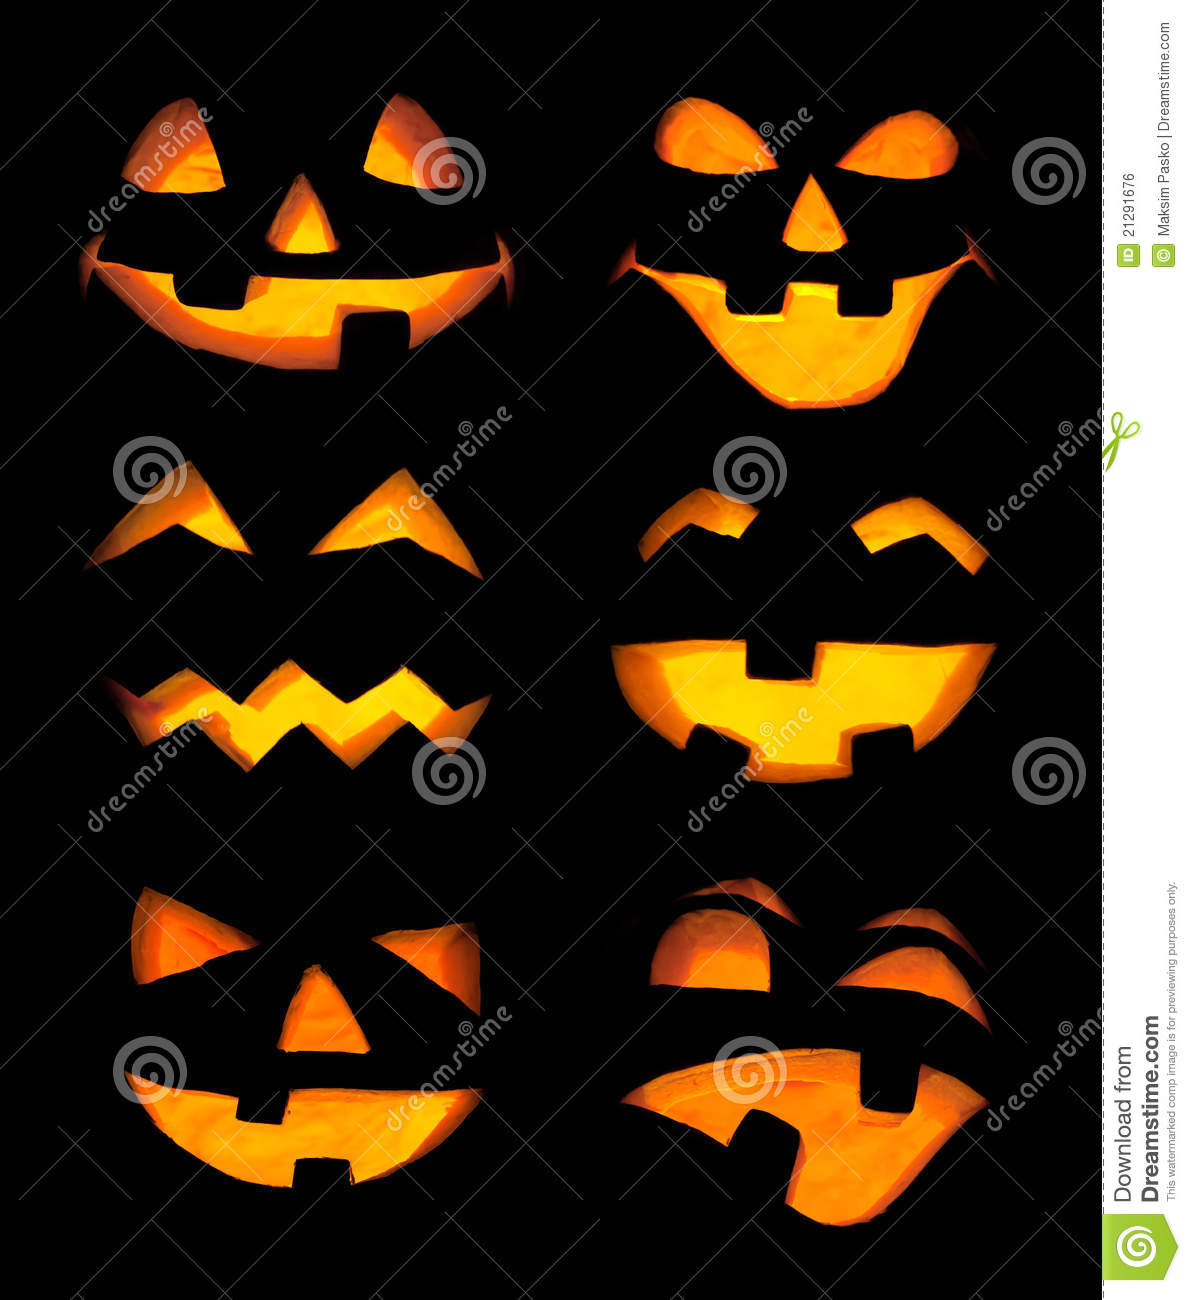 Carved Pumpkin Faces Royalty Free Stock Image - Image ...